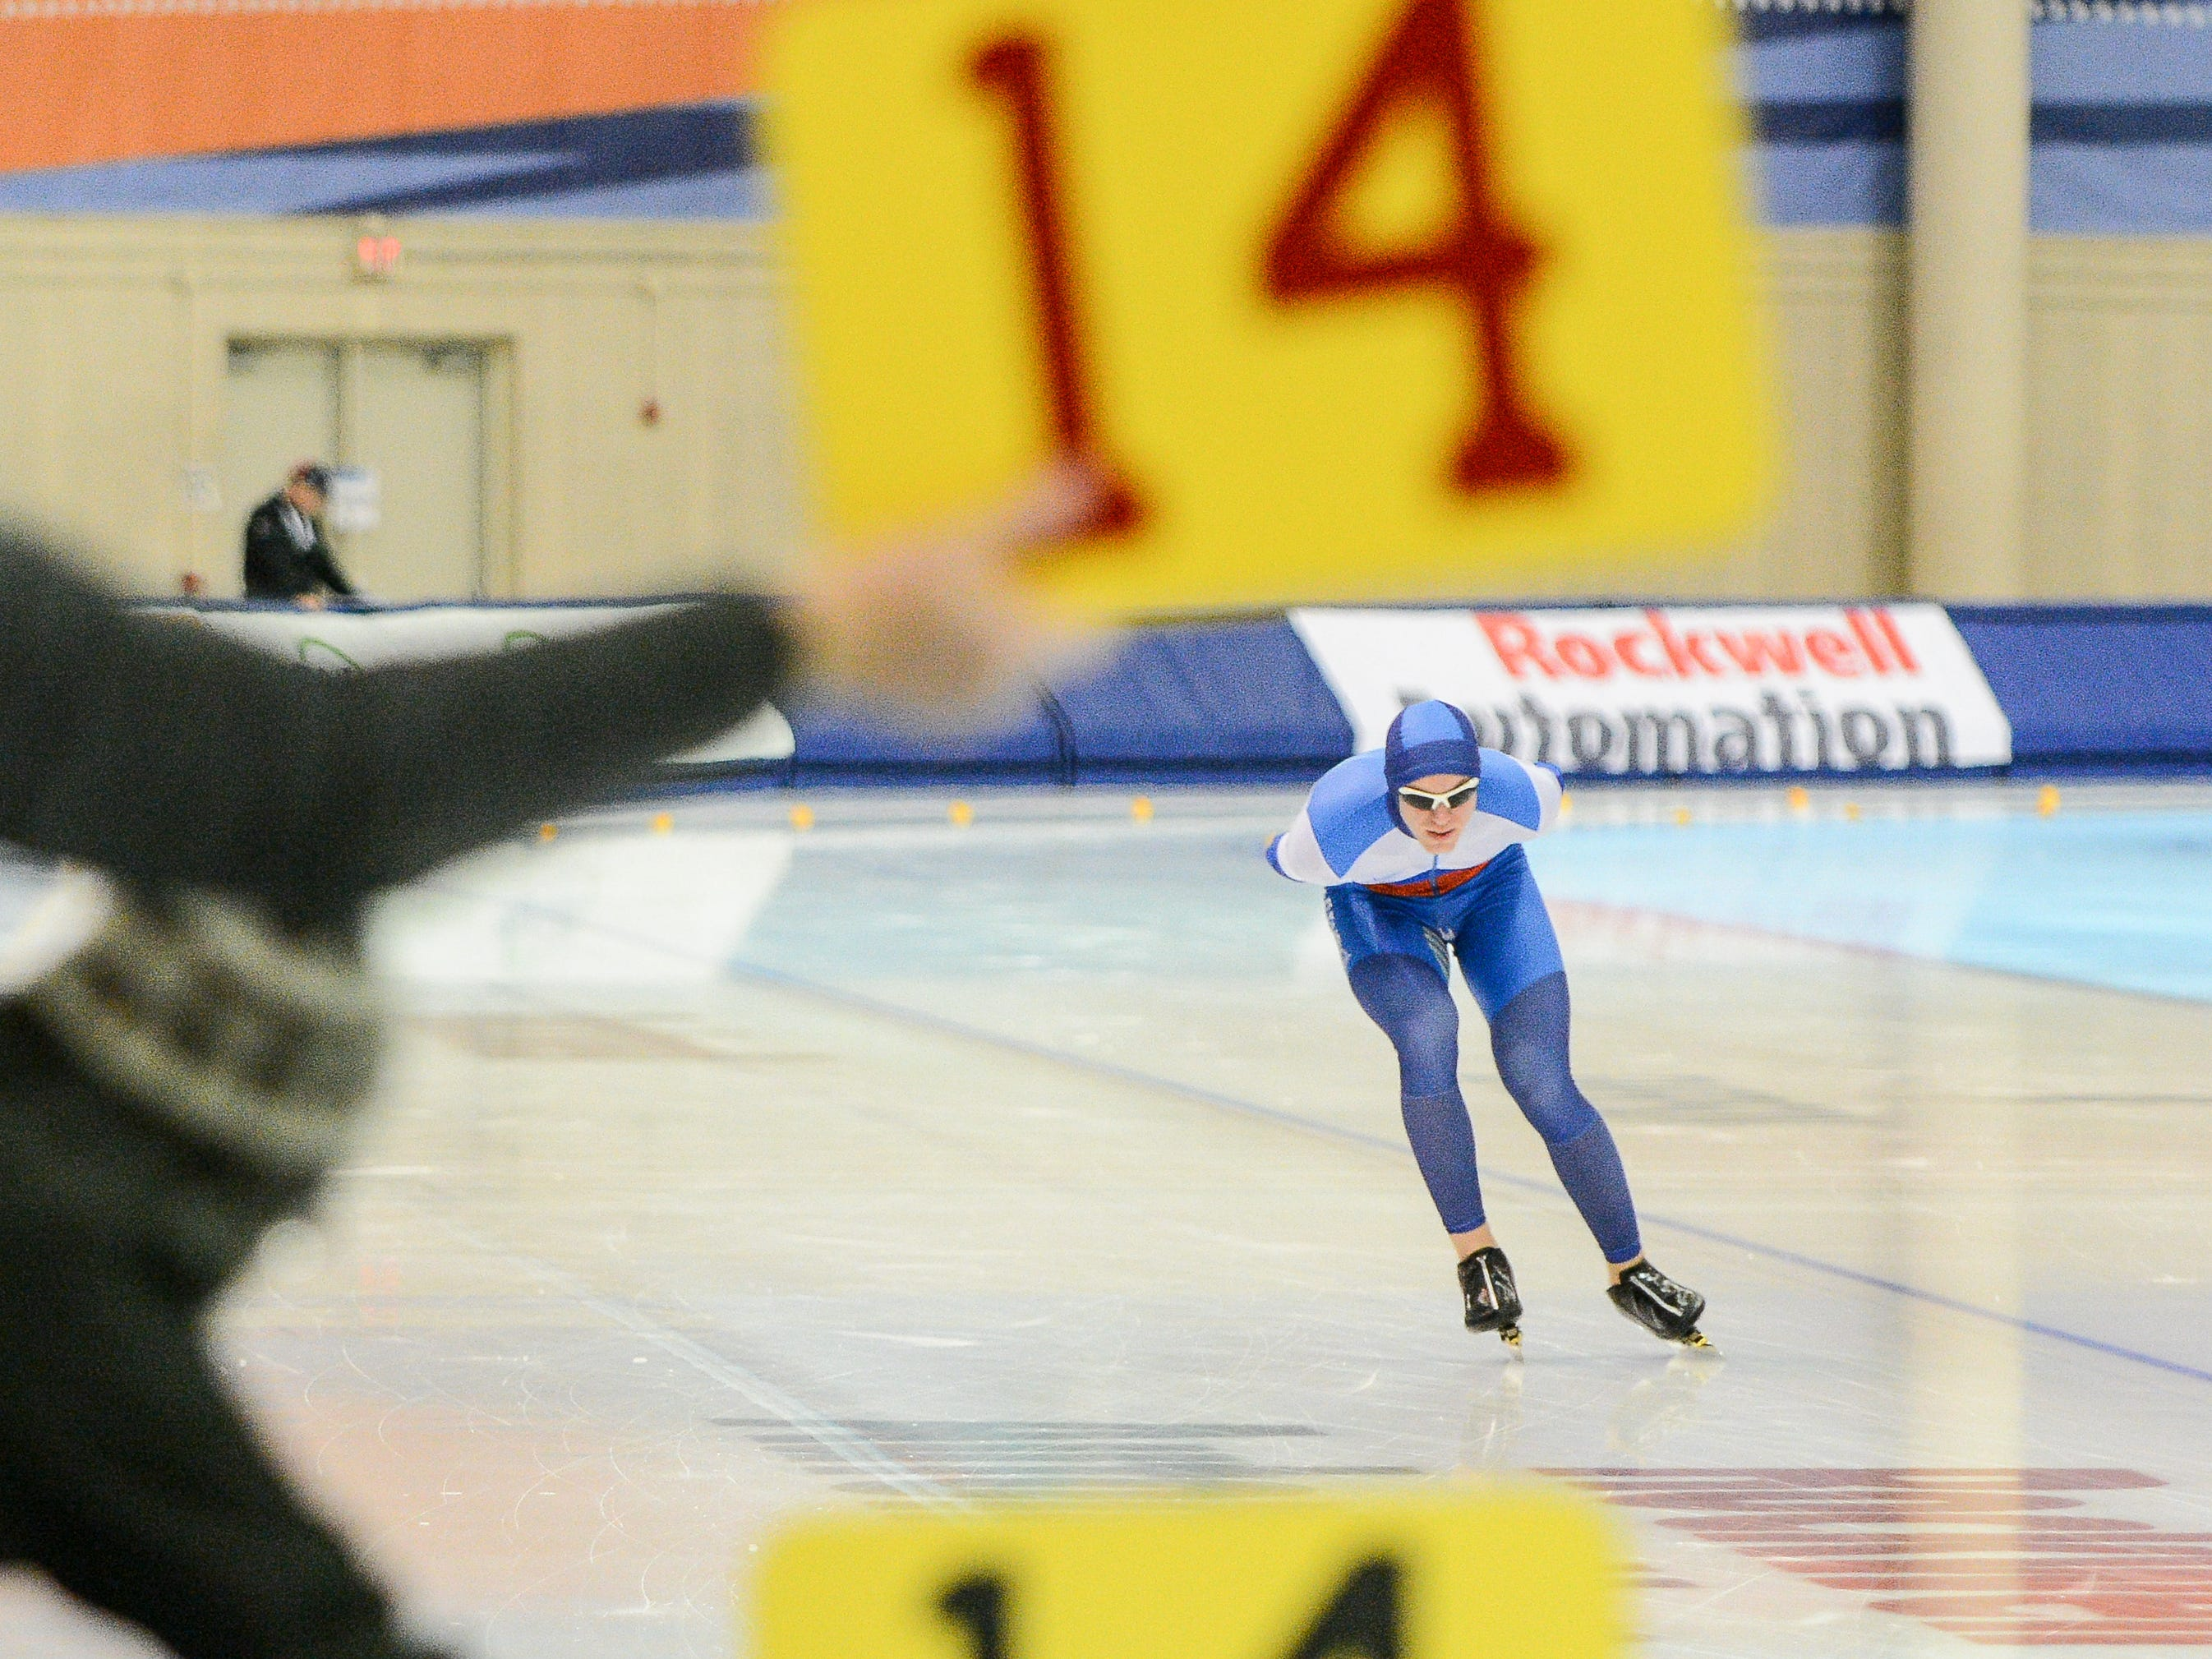 Adam Johnson skates in the men's 10,000 meters at the U.S. World Cup qualifying event Sunday, November 4, 2018, at the Pettit National Ice Center.